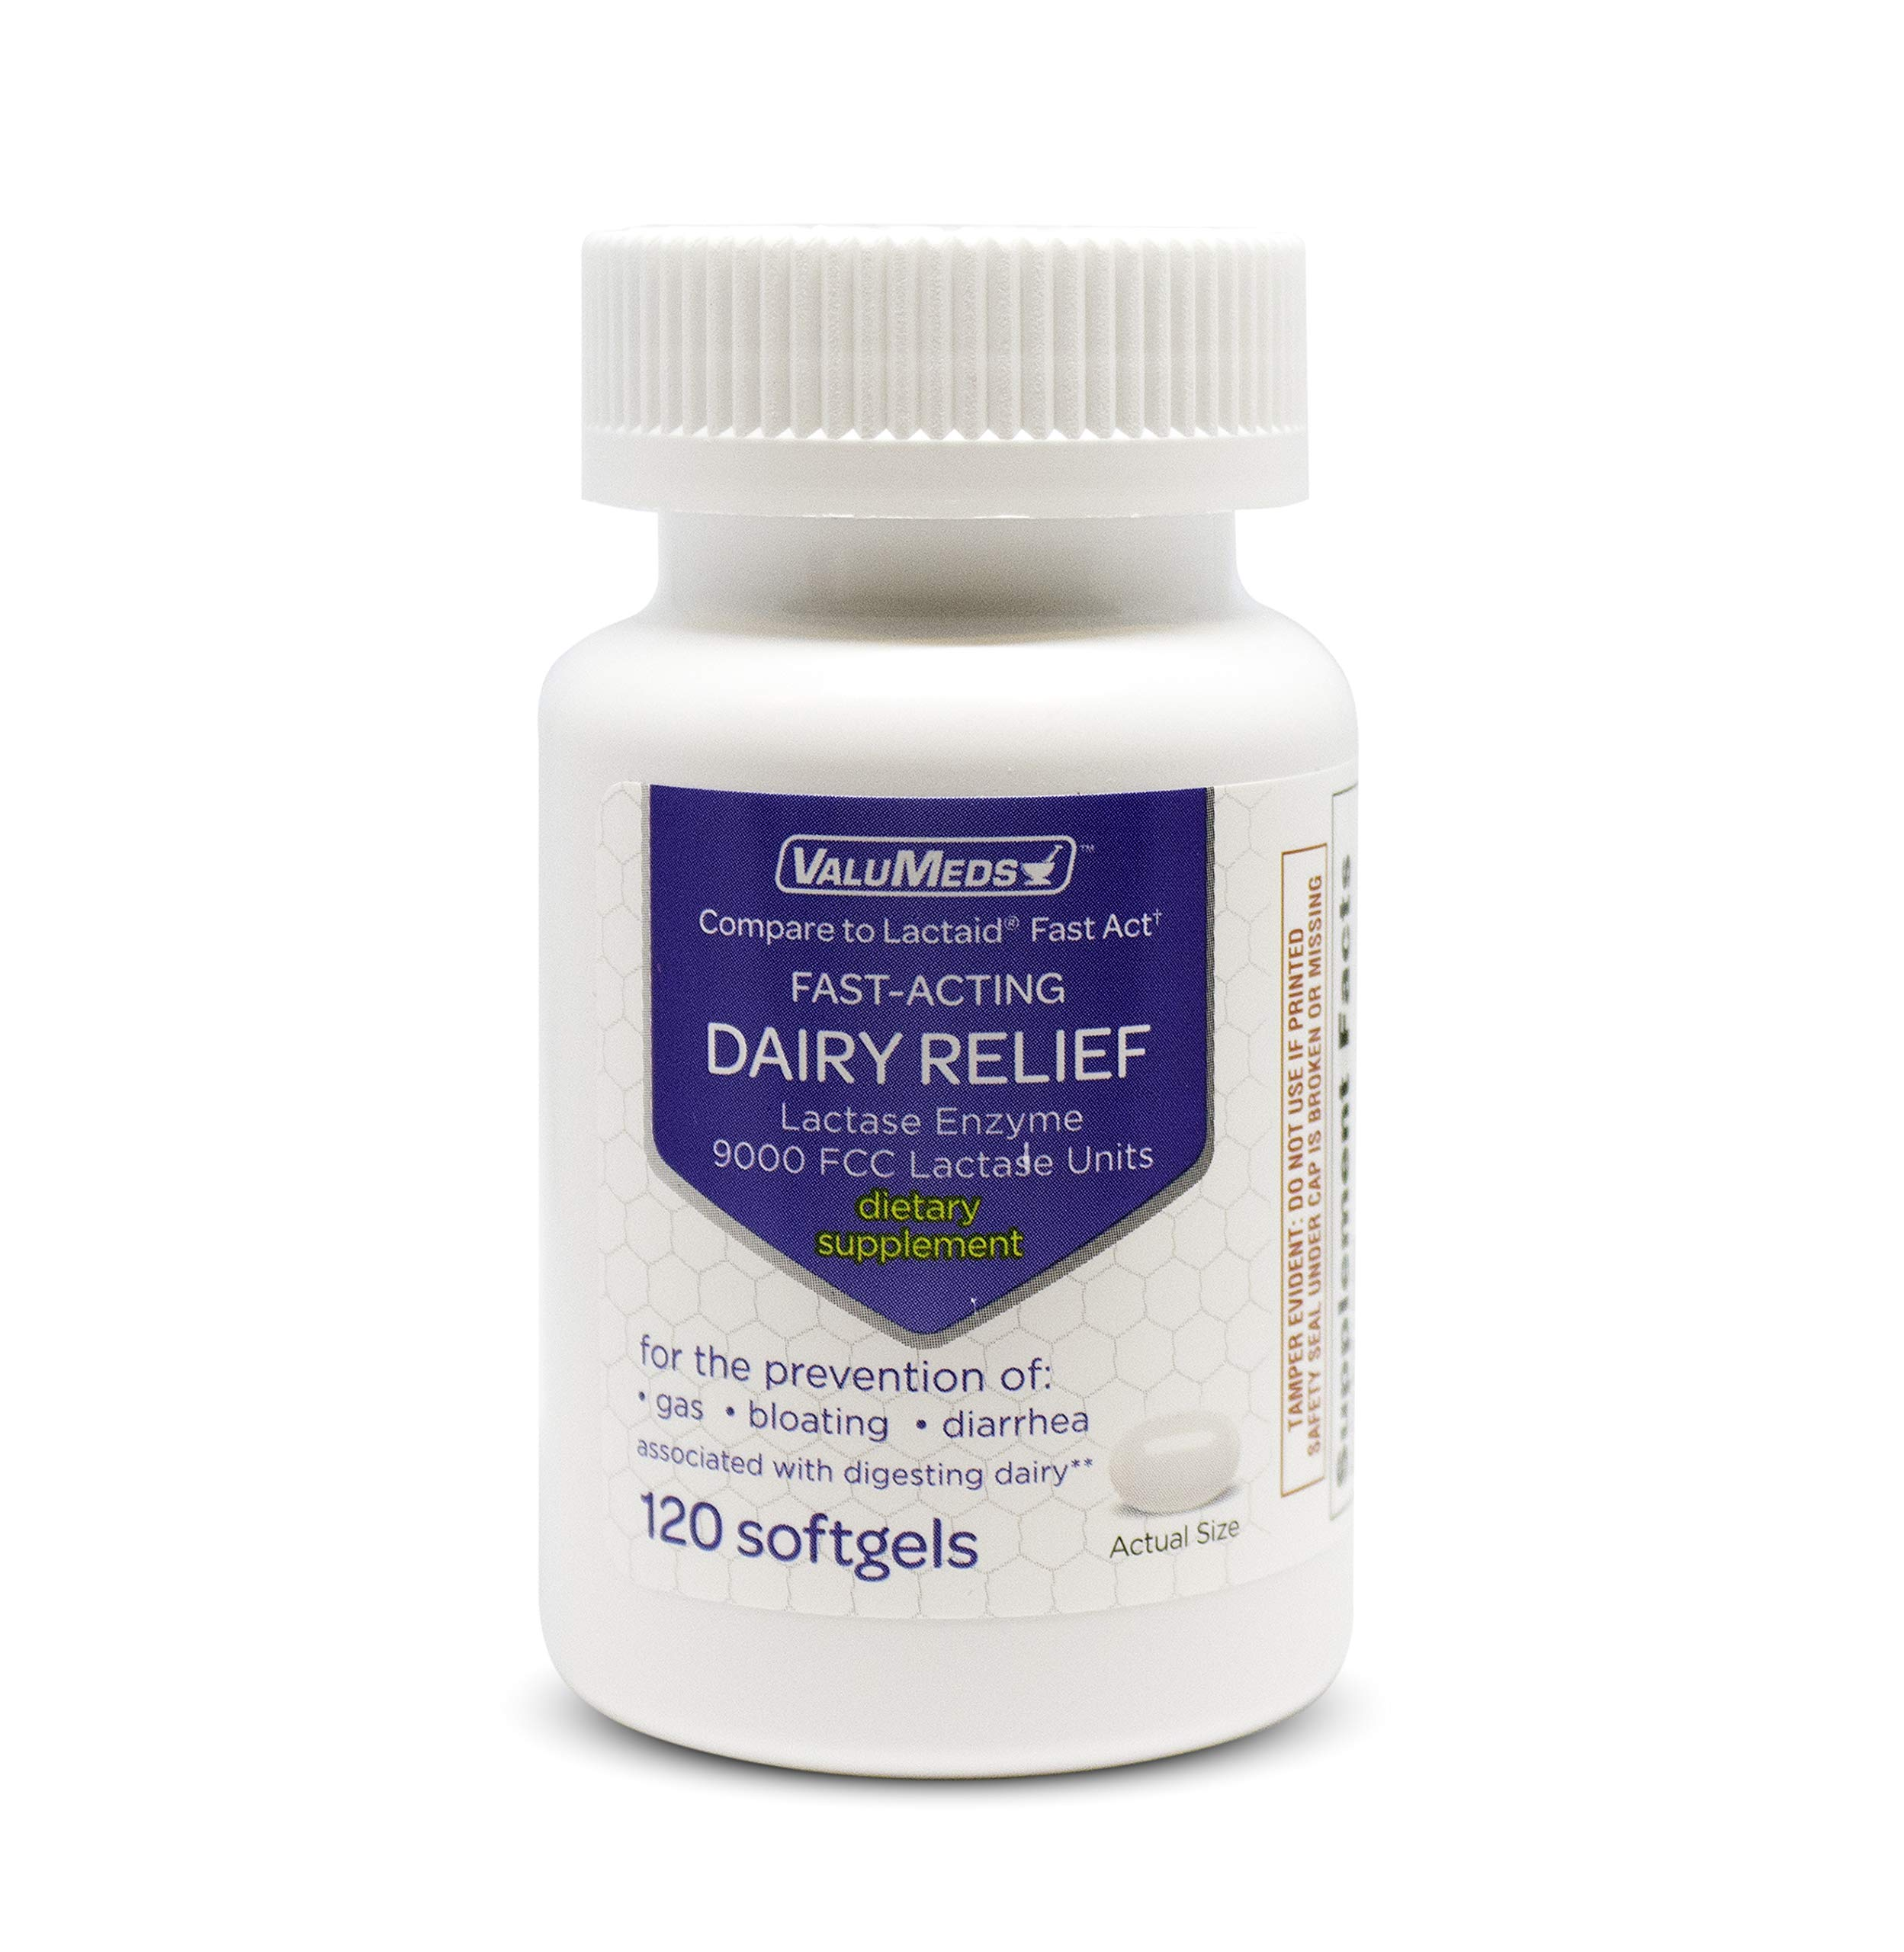 ValuMeds Fast Acting Dairy Relief Lactose Enzymes, 120 Softgels, Help Prevent Gas, Bloating, Diarrhea, Intolerance, or Sensitivity, Comparable to Lactaid by ValuMeds